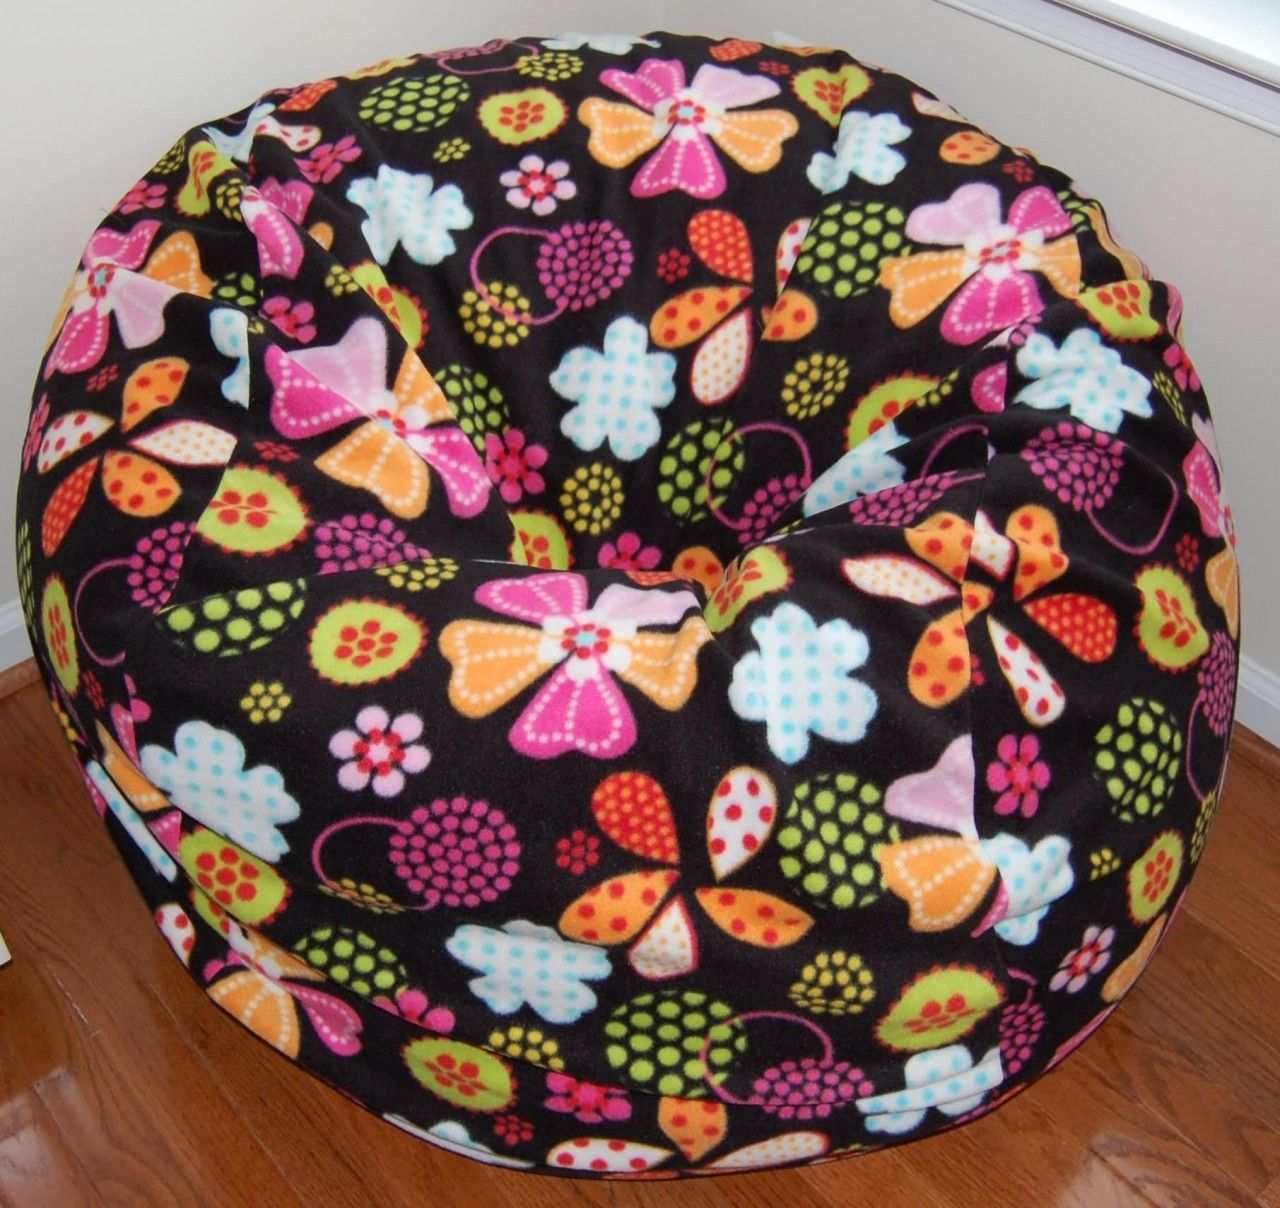 Of Bean Bag Chairs For Kids Adults Washable Bags